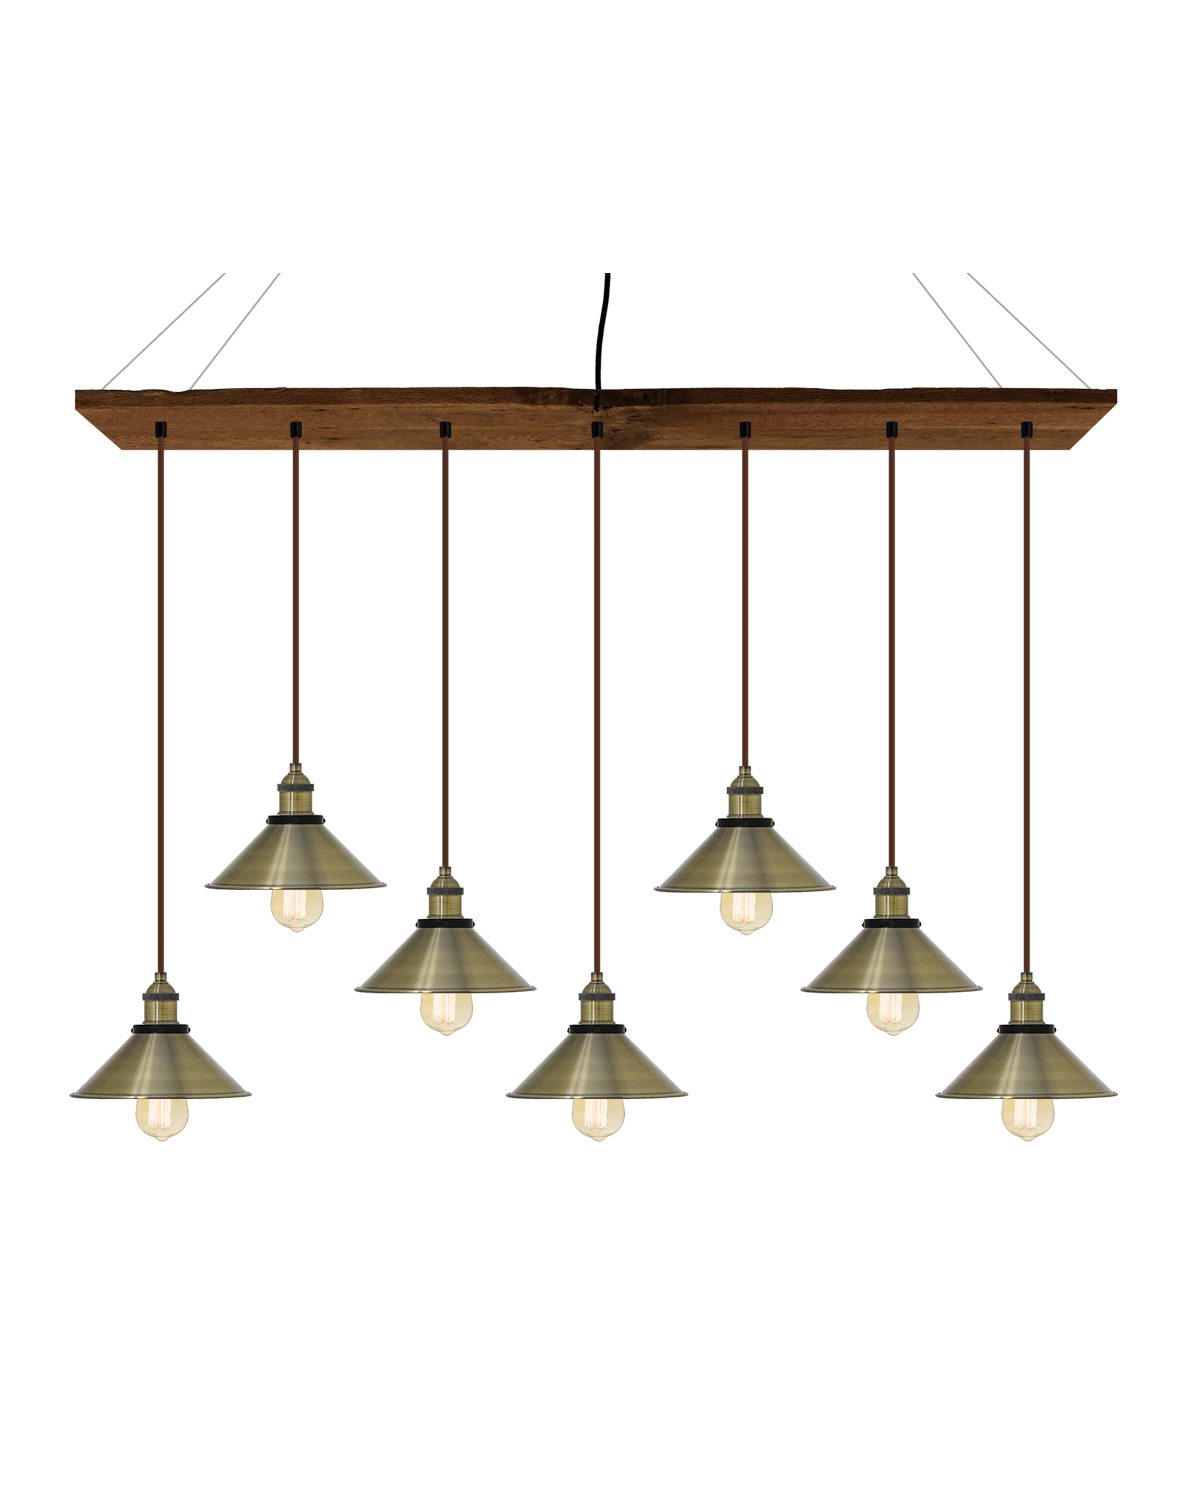 "47"" x 9"" Reclaimed Wood Chandelier: Walnut, Brown, and Antique Brass Shades Hangout Lighting"